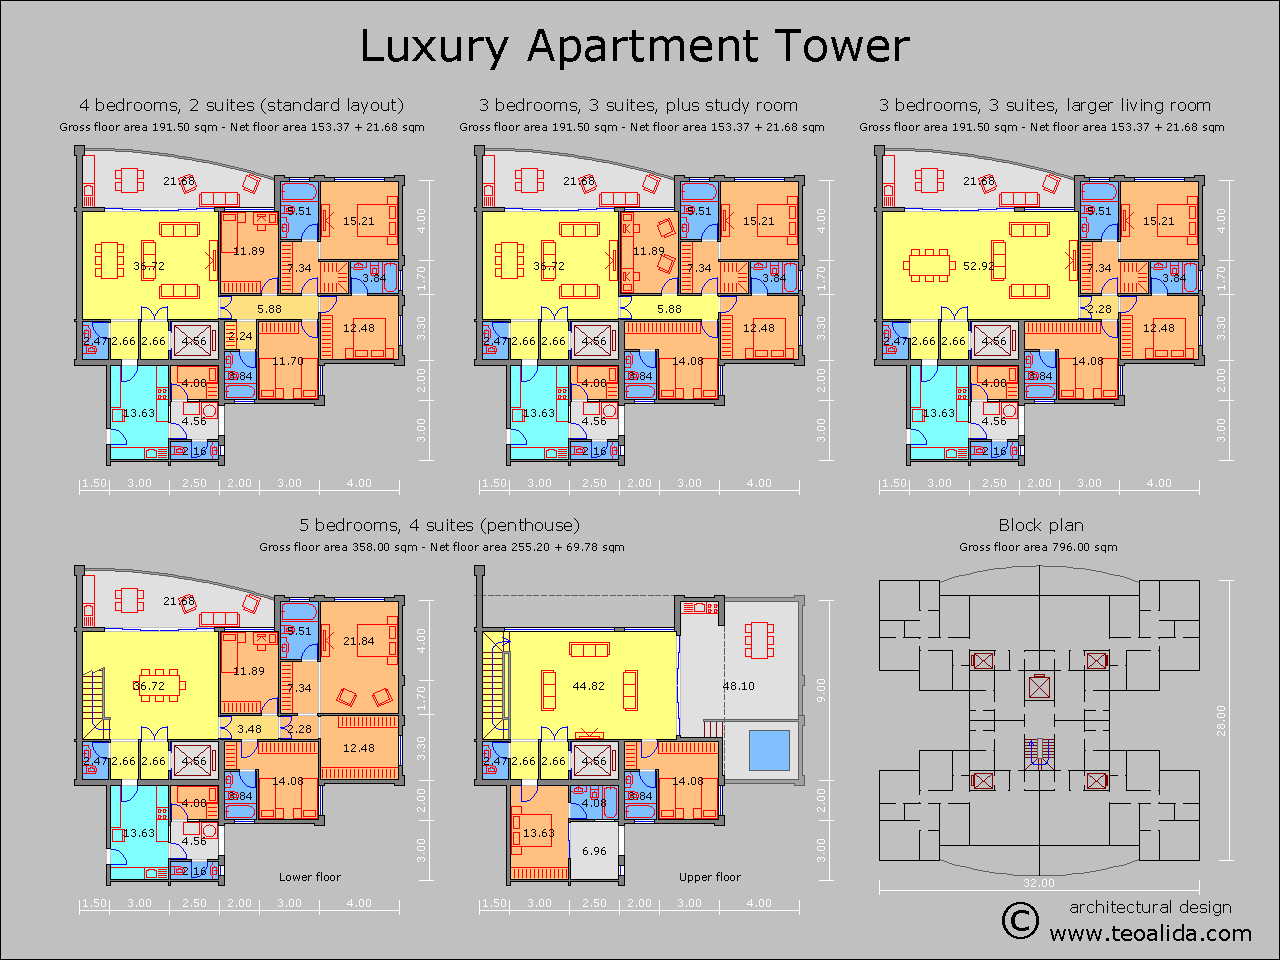 Luxury apartment tower